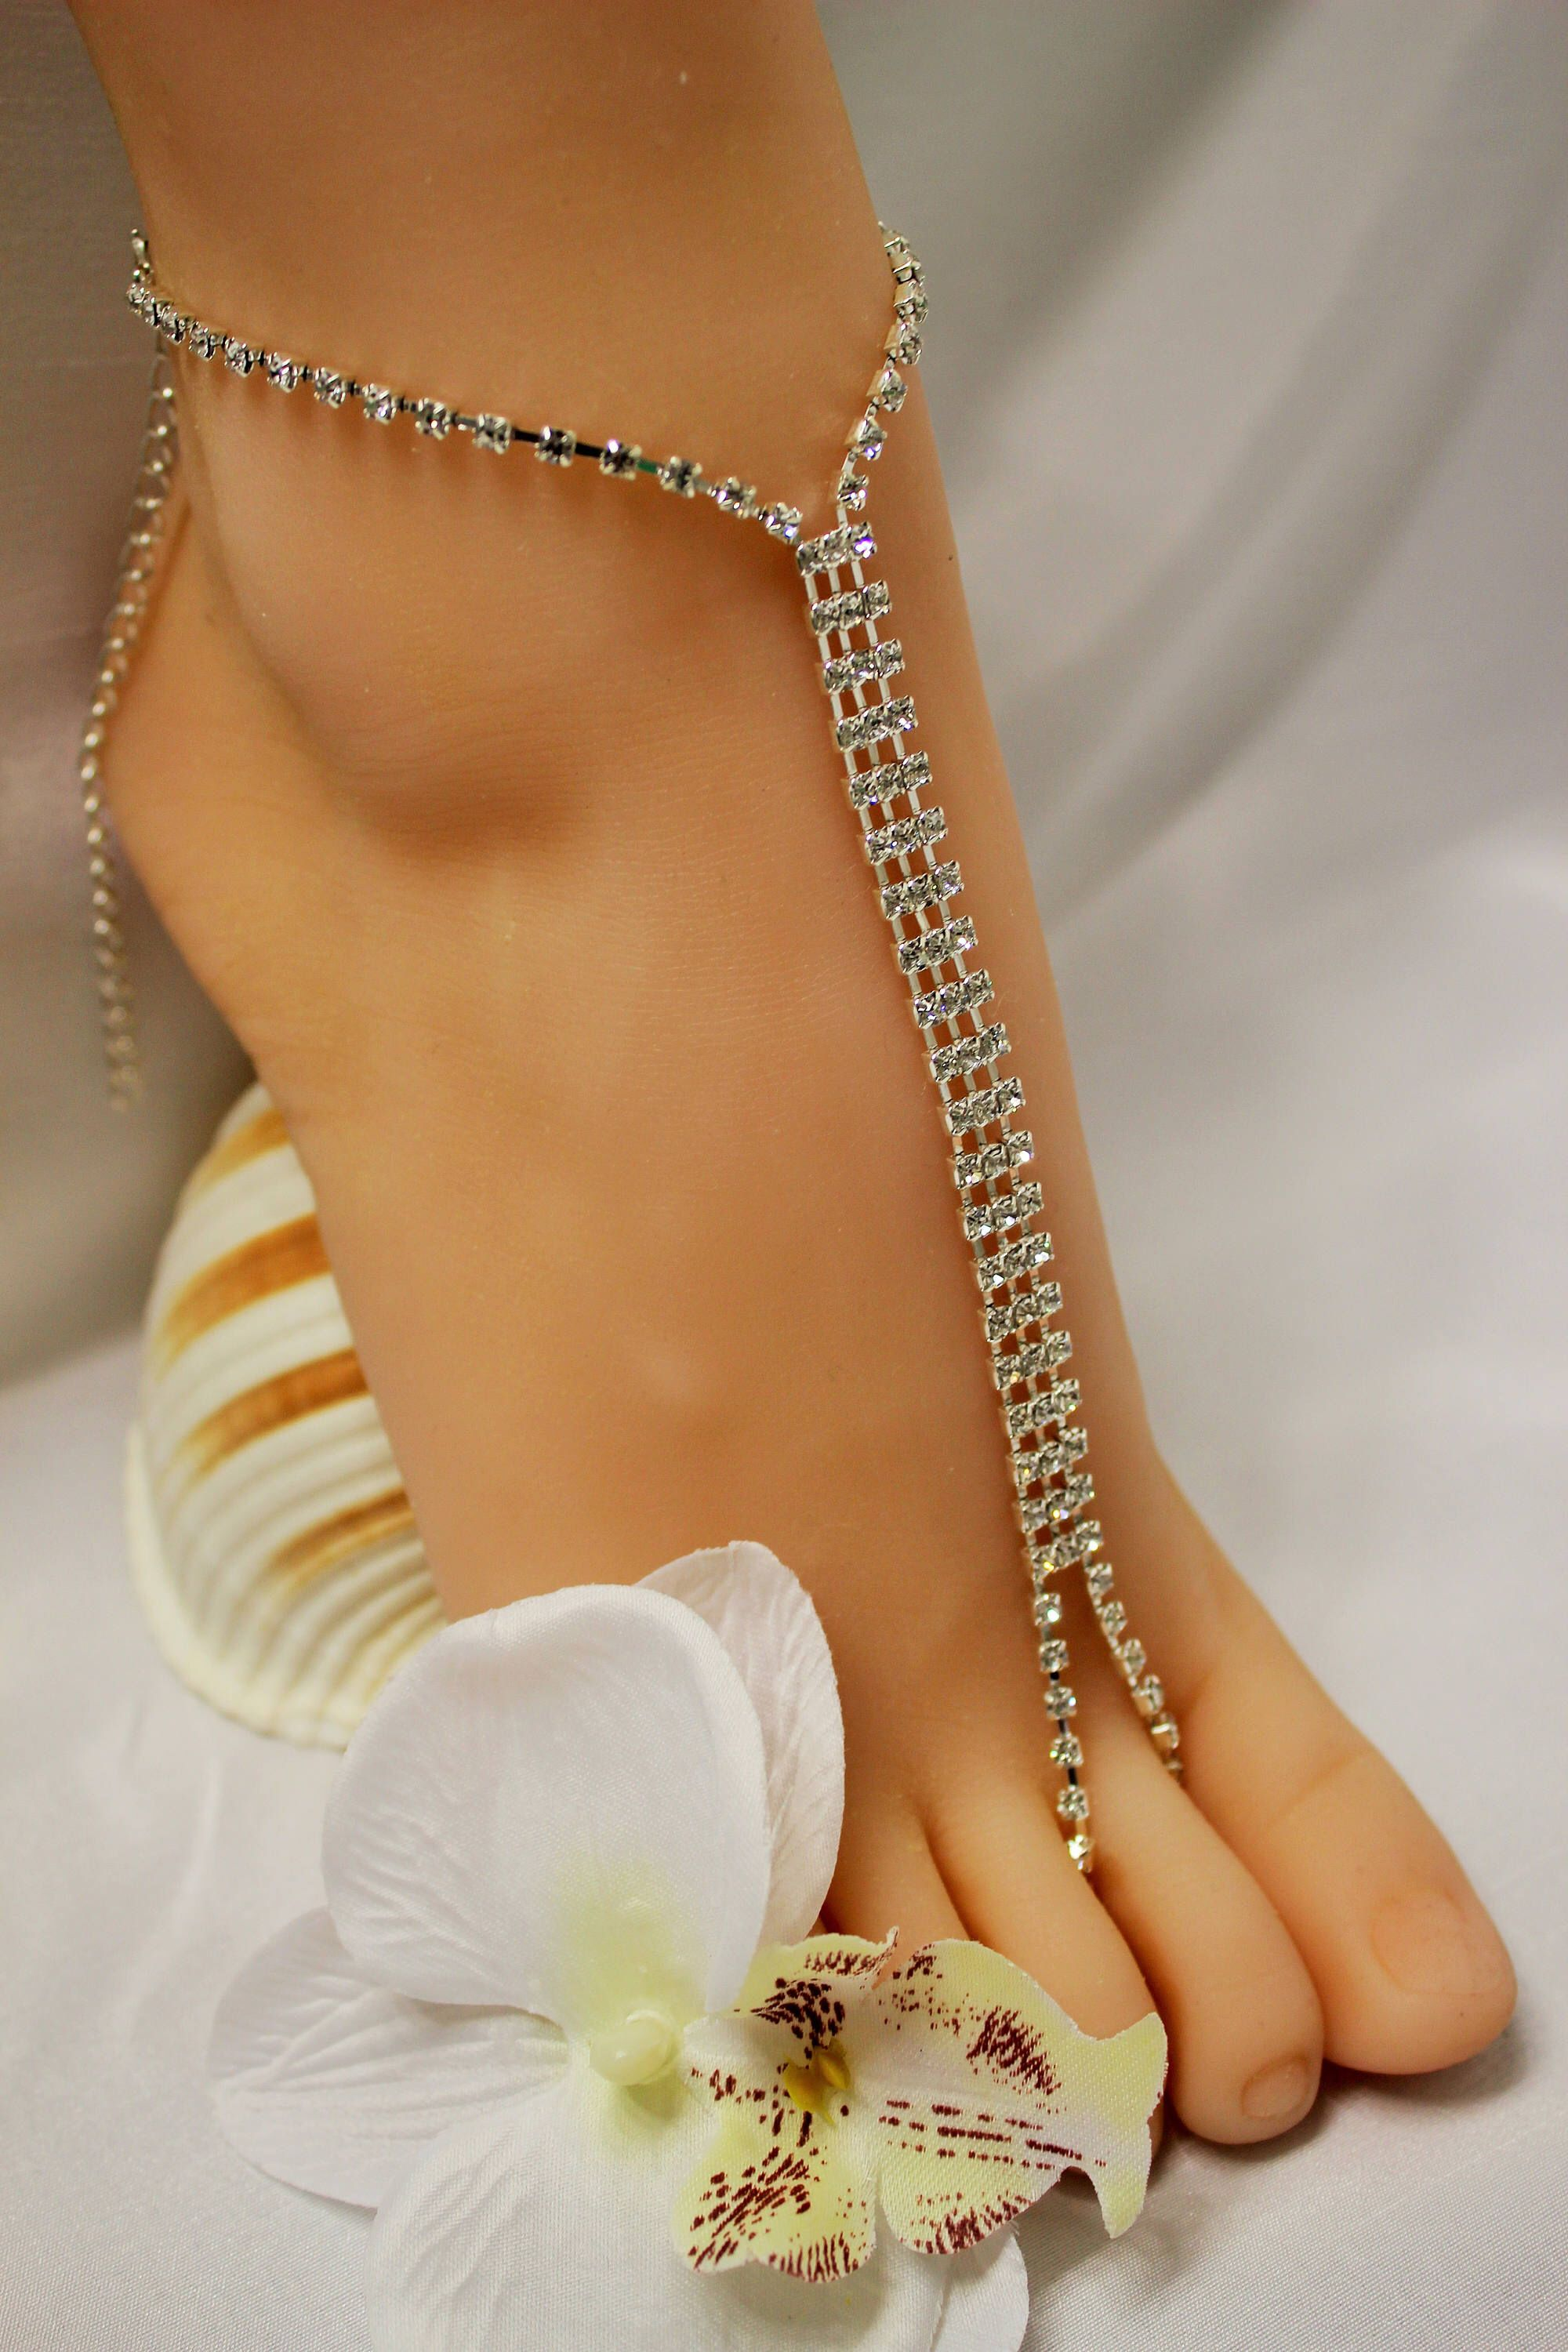 ring things anklets rhinestone jewelry wedding toe foot anklet cross pin